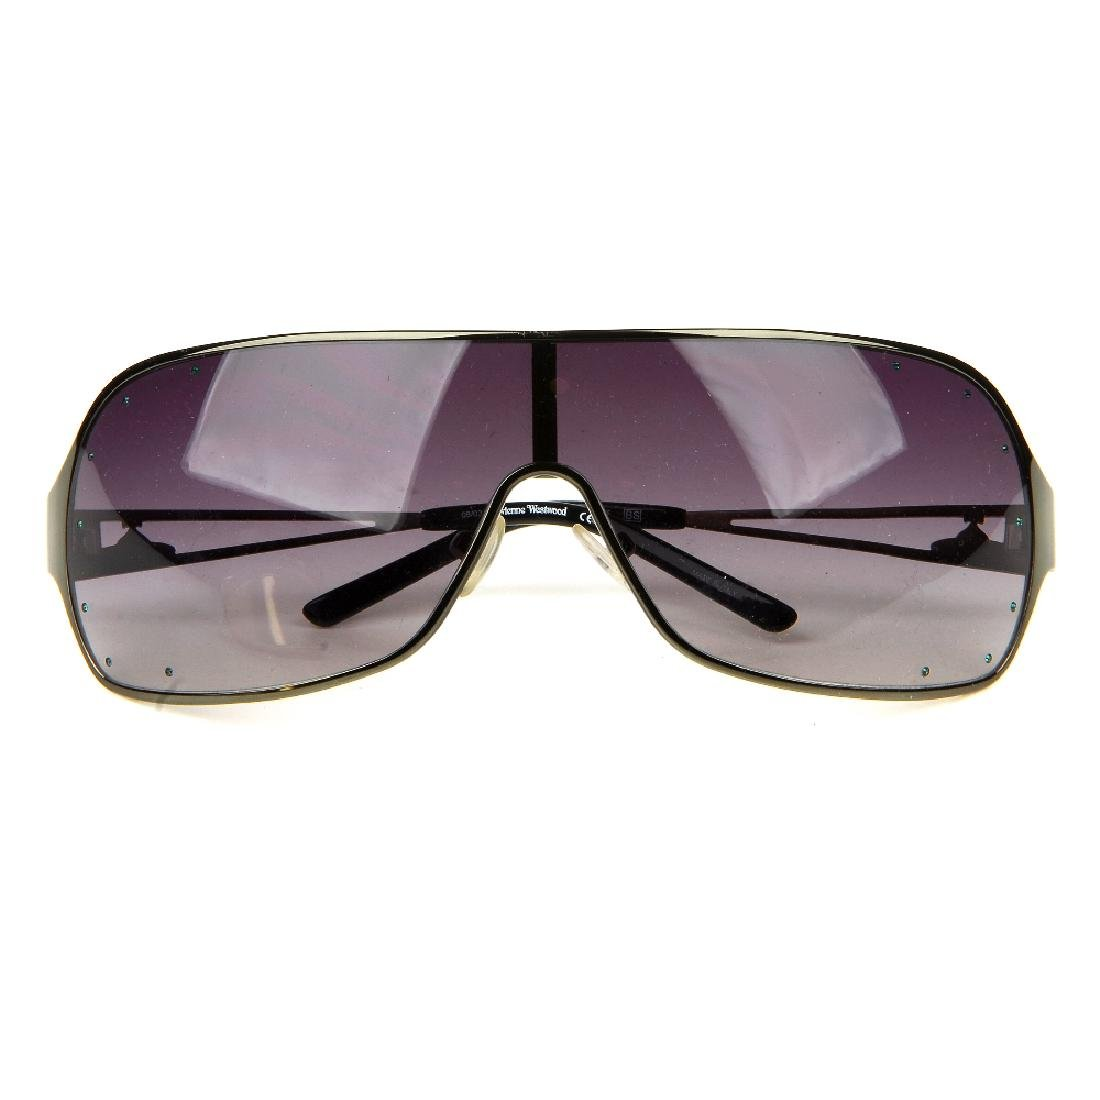 VIVIENNE WESTWOOD - a pair of sunglasses. Featuring